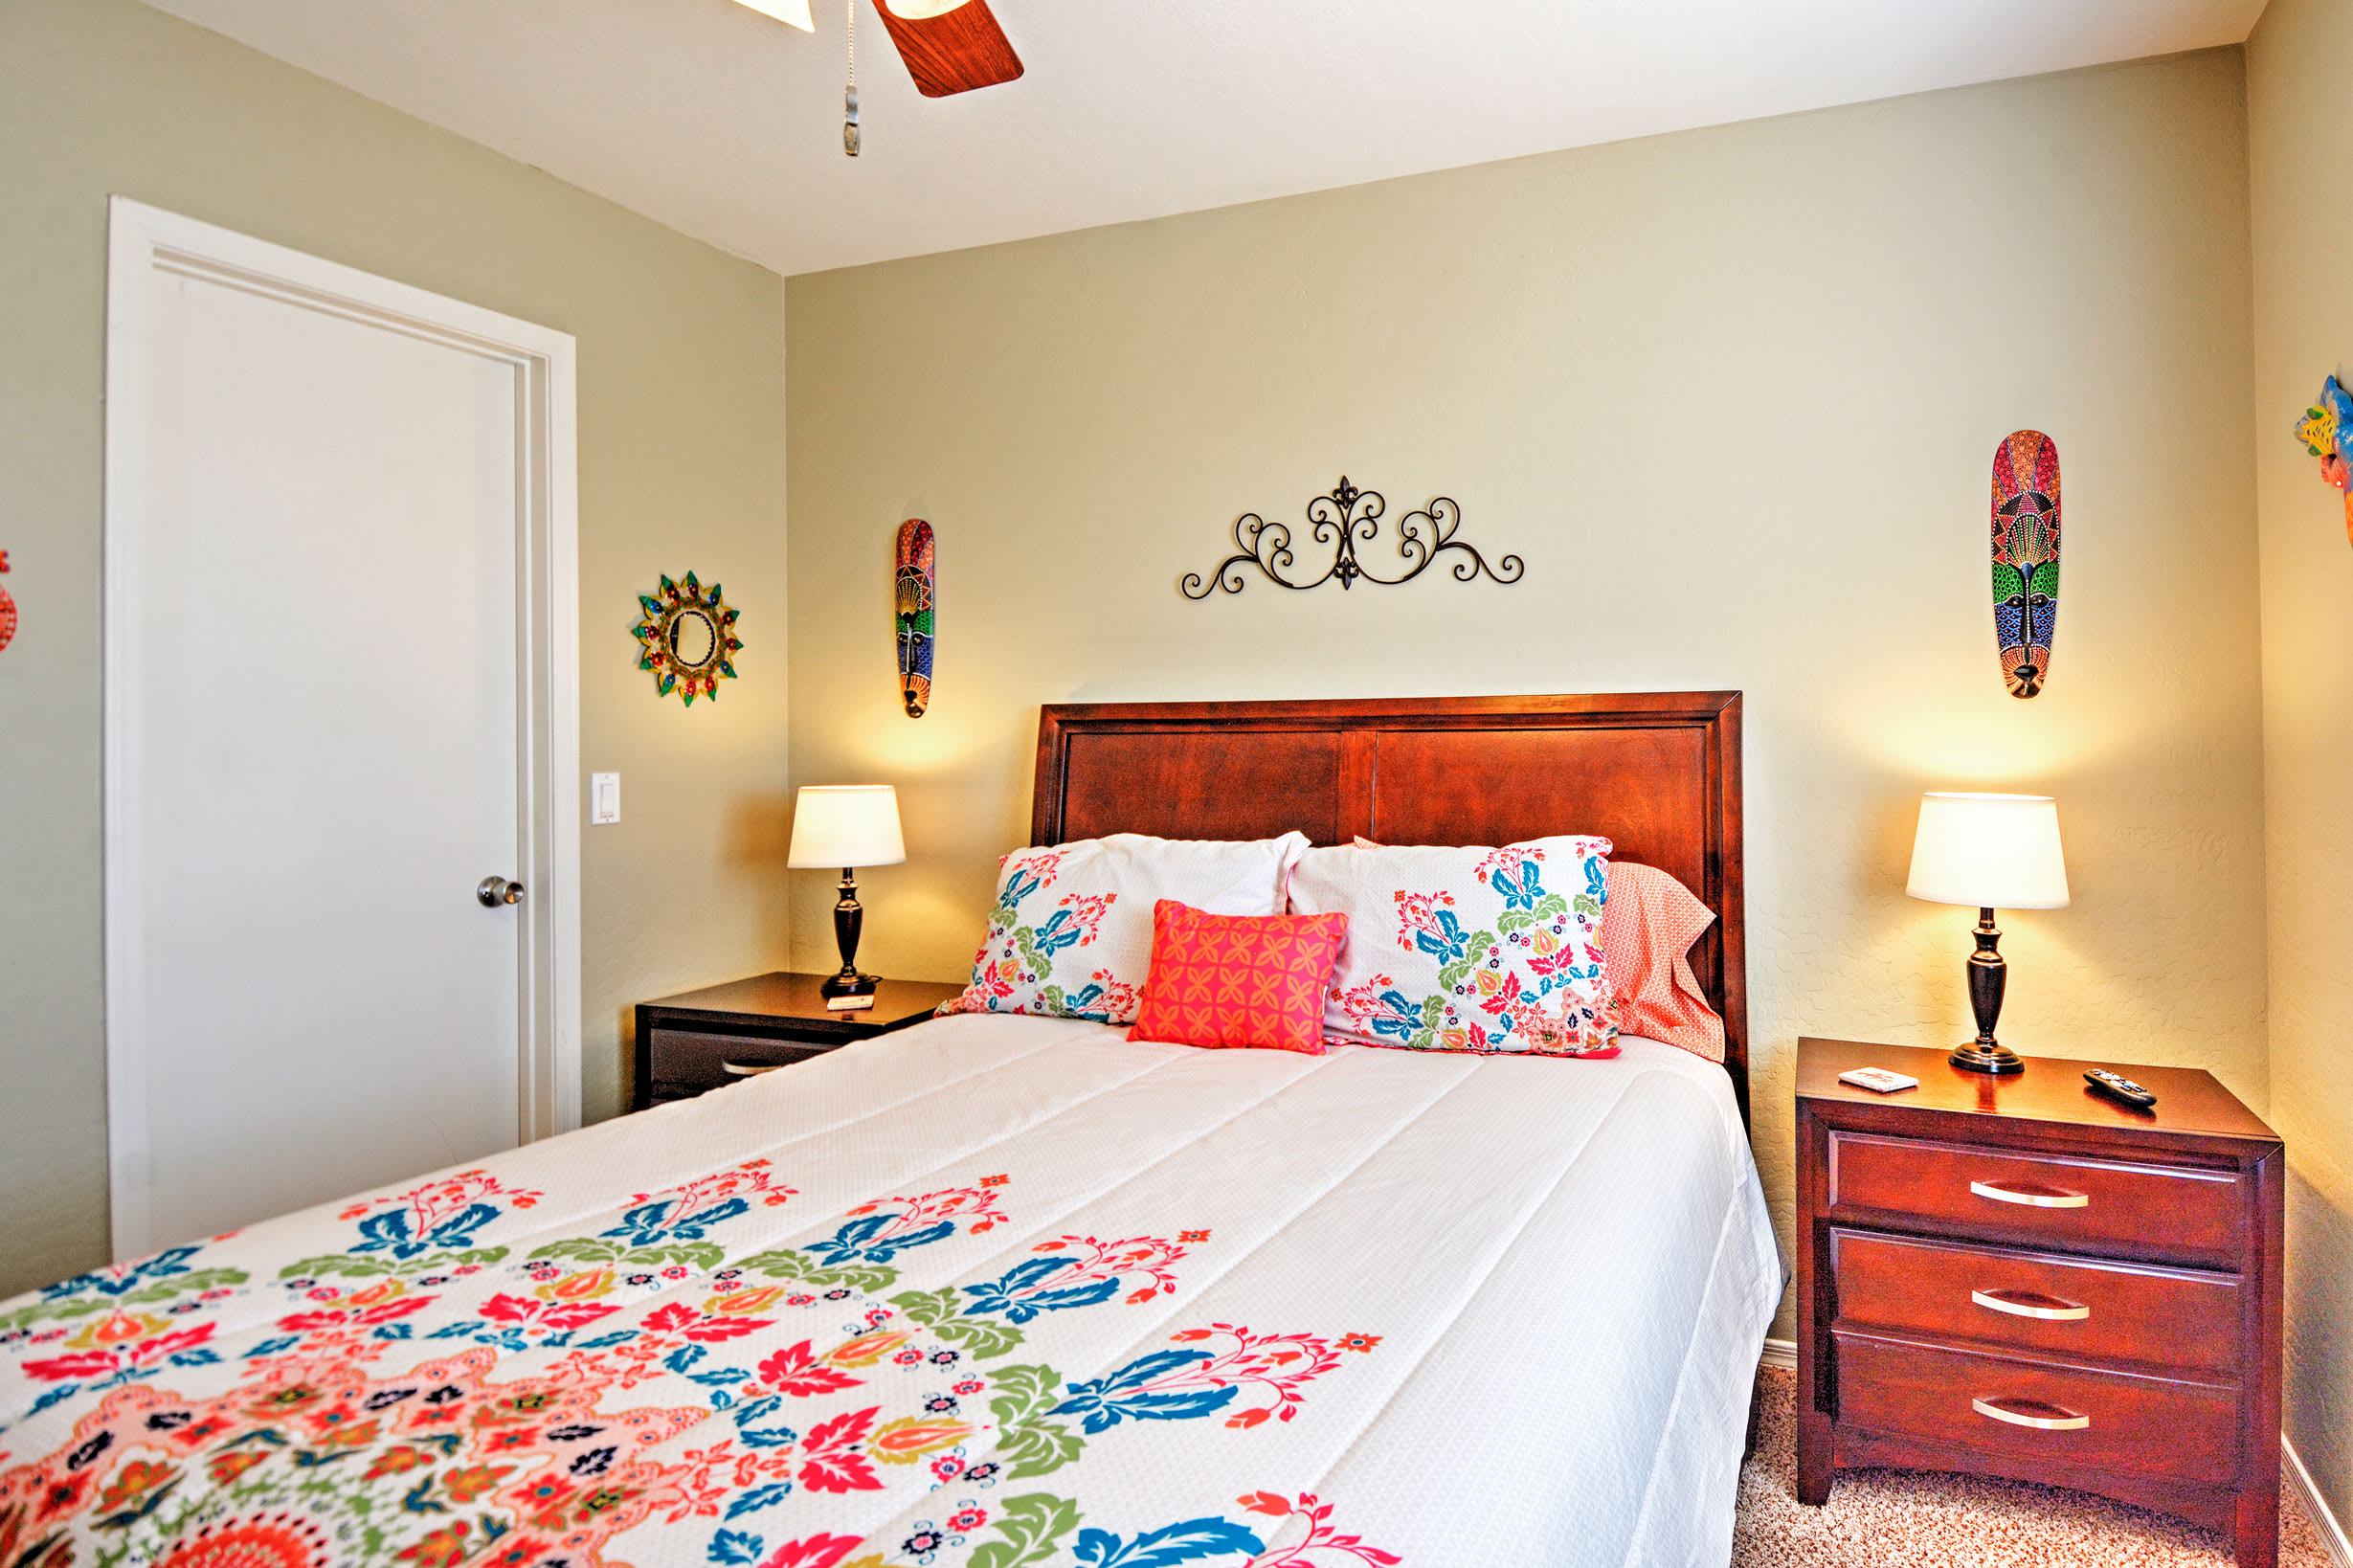 Grab a book and escape to the third bedroom for quiet time.